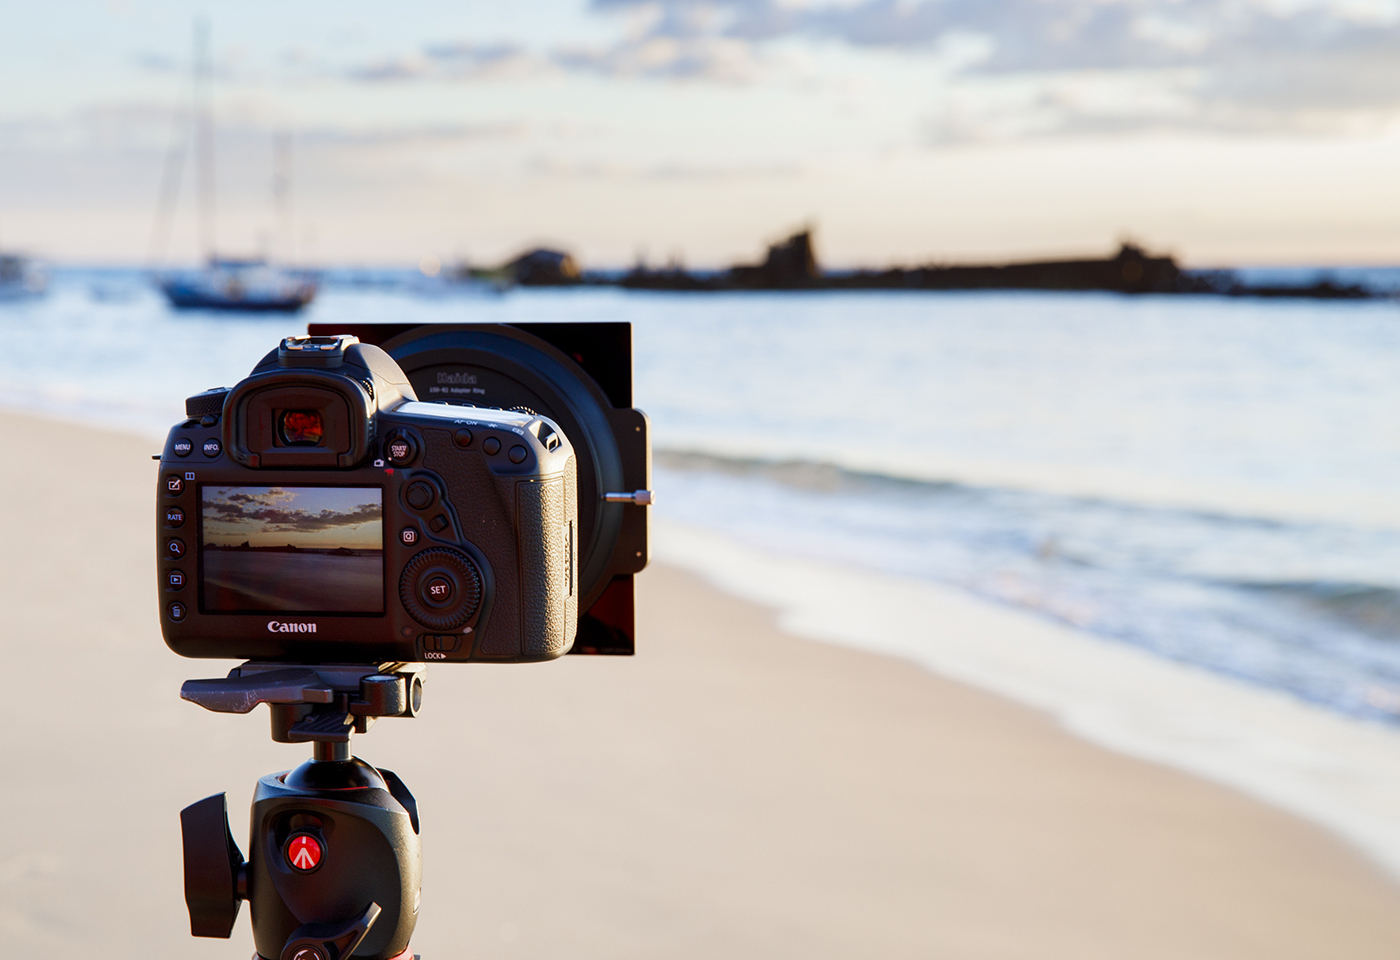 Image of camera on tripod at a beach